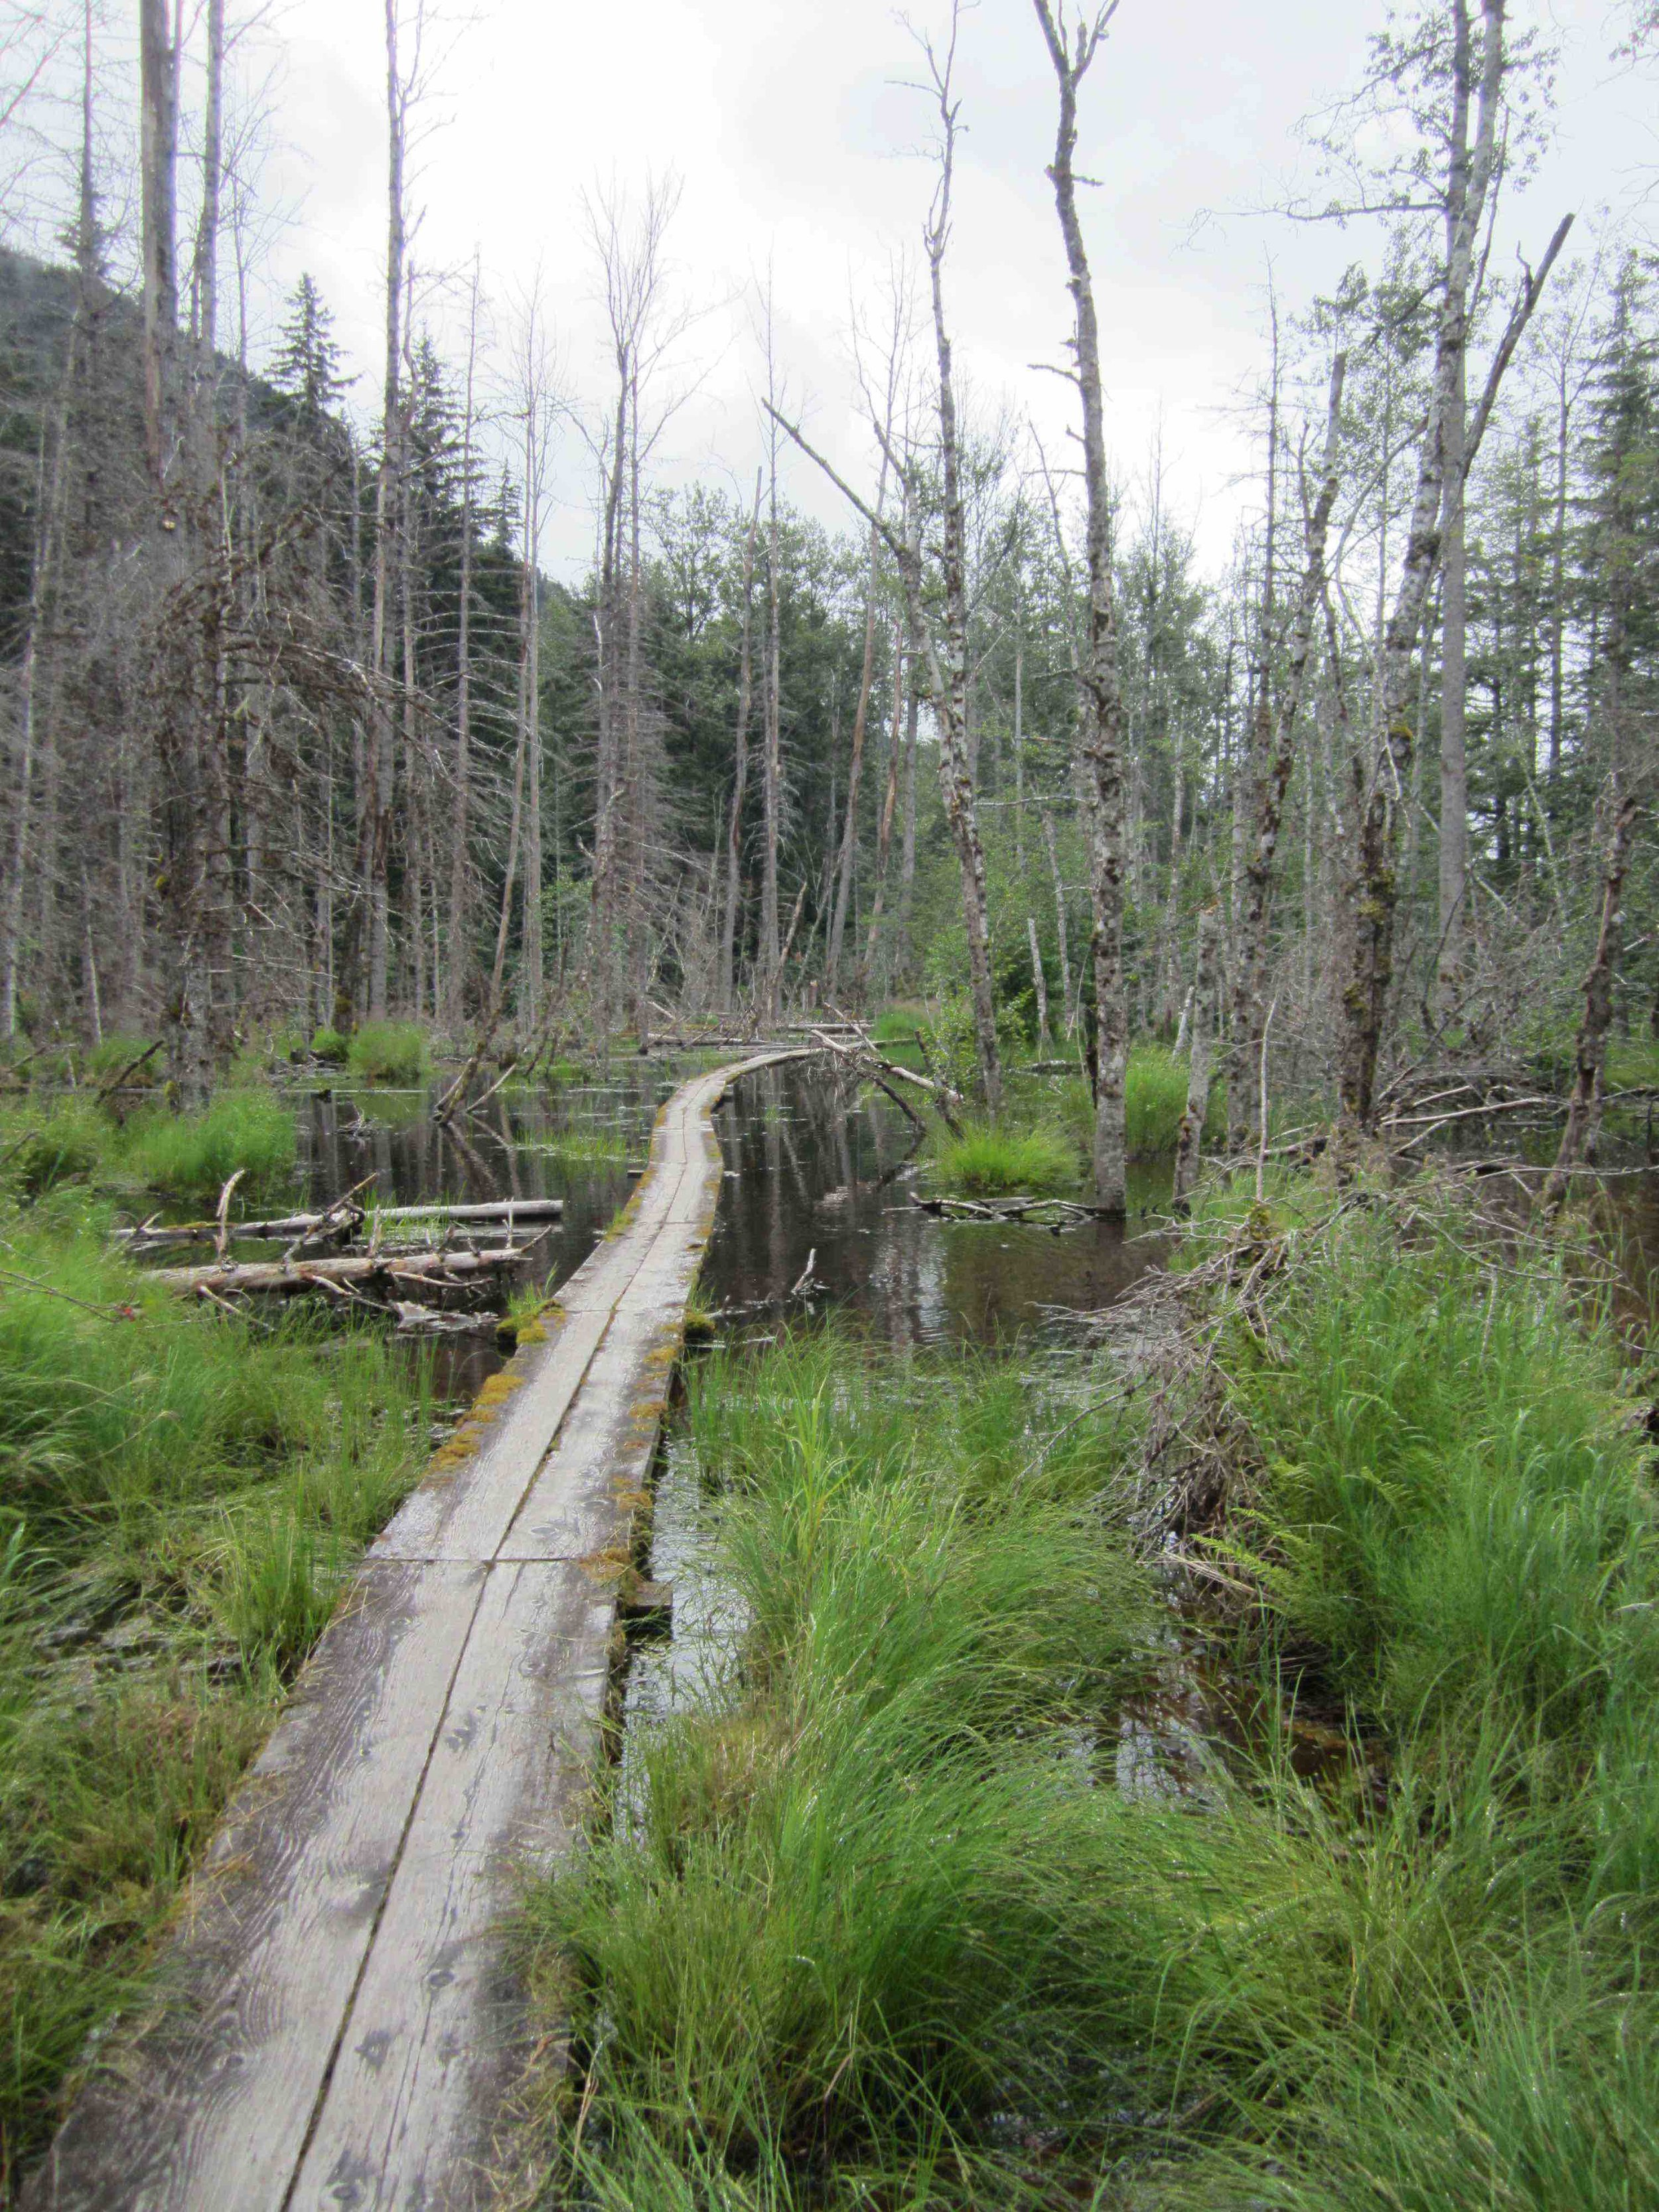 The first of the trail on the Alaskan side was very lush and dump. (coastal rainforest)